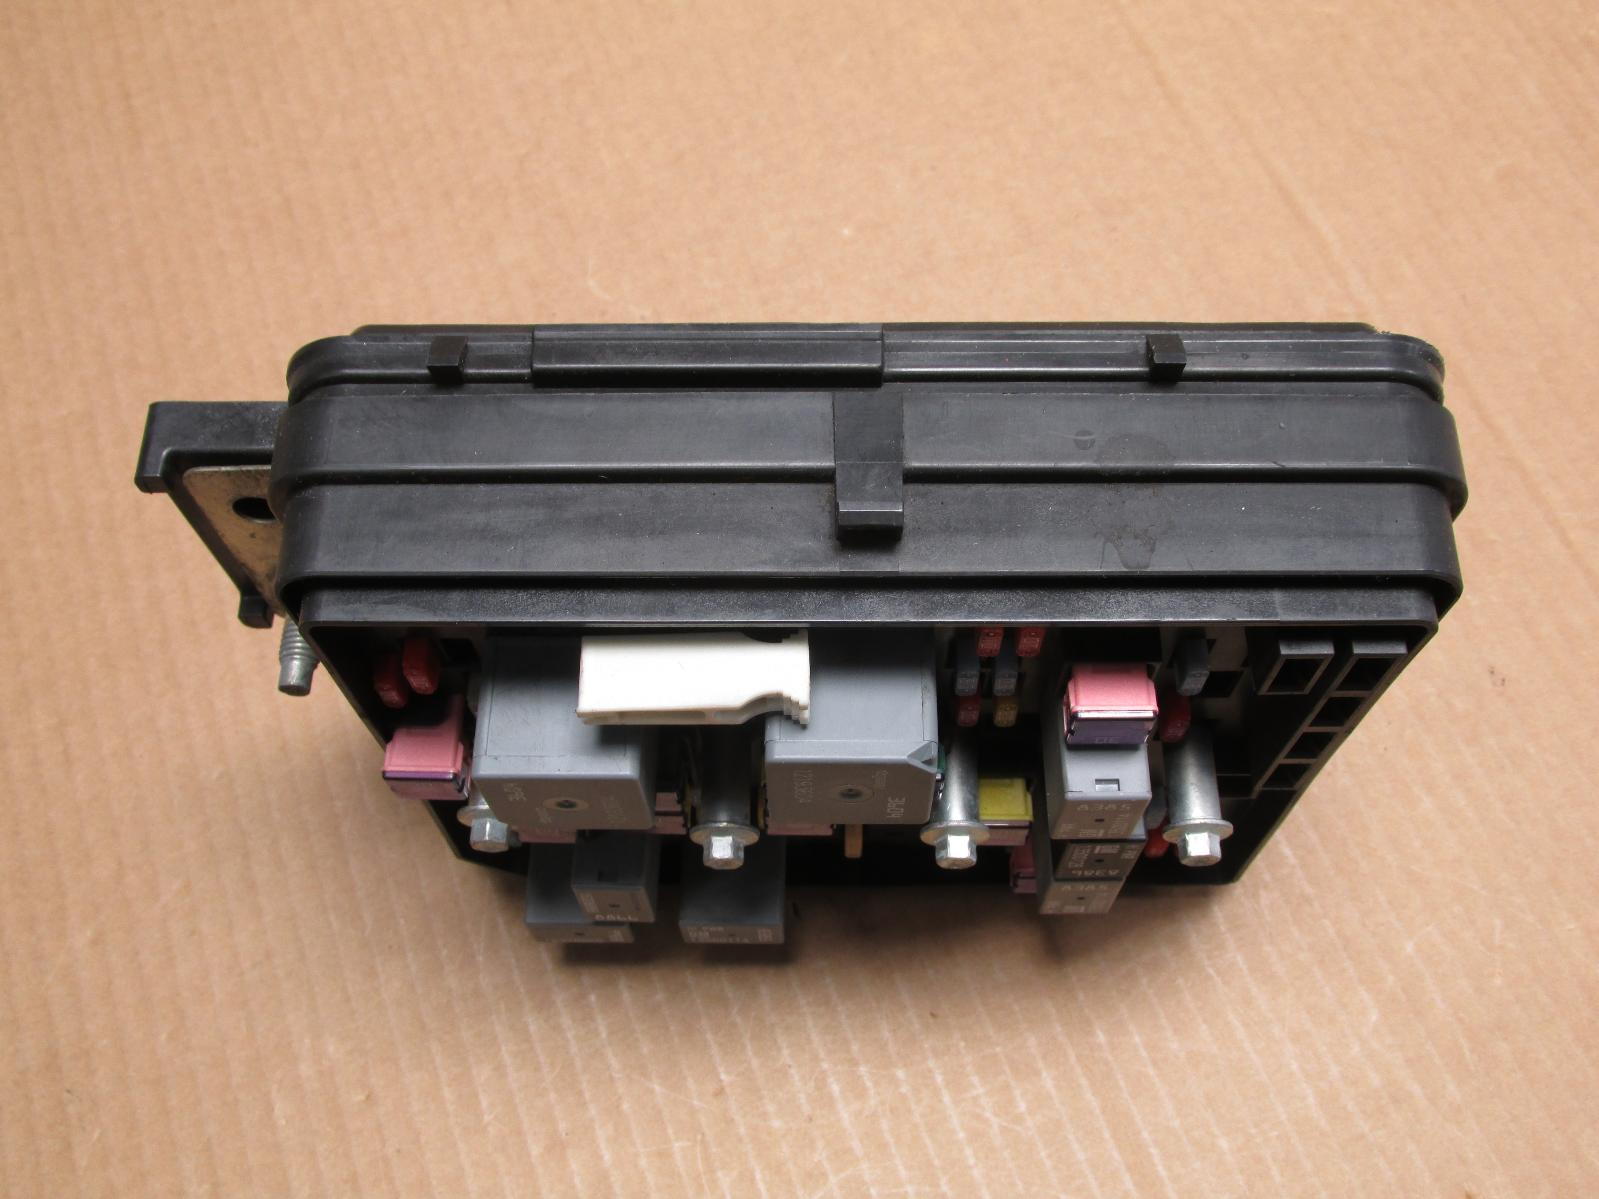 08 chevy impala fuse panel fuse box auto fuse box diagram 2008 chevy impala fuse box diagram 2008 chevy impala fuse box